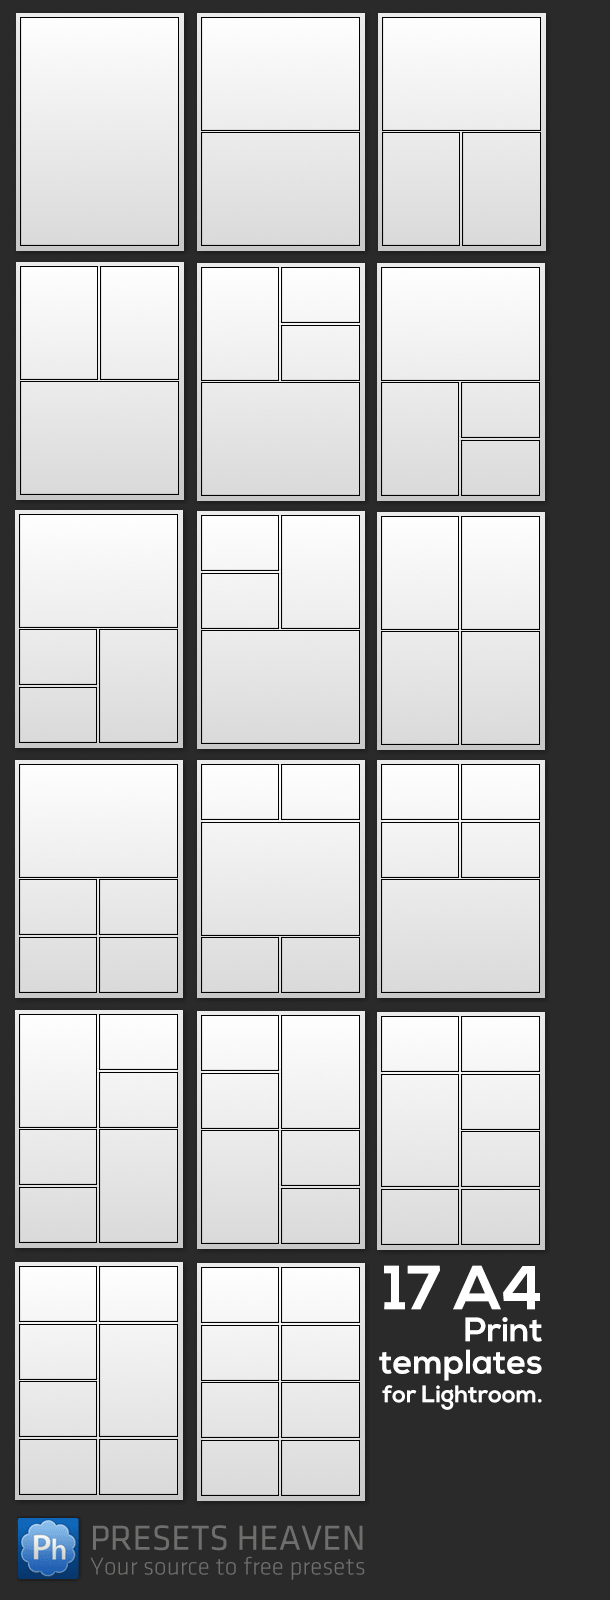 Check out these 17 a4 print templates for lightroom that i made earlier this week photoshop for Lightroom collage templates